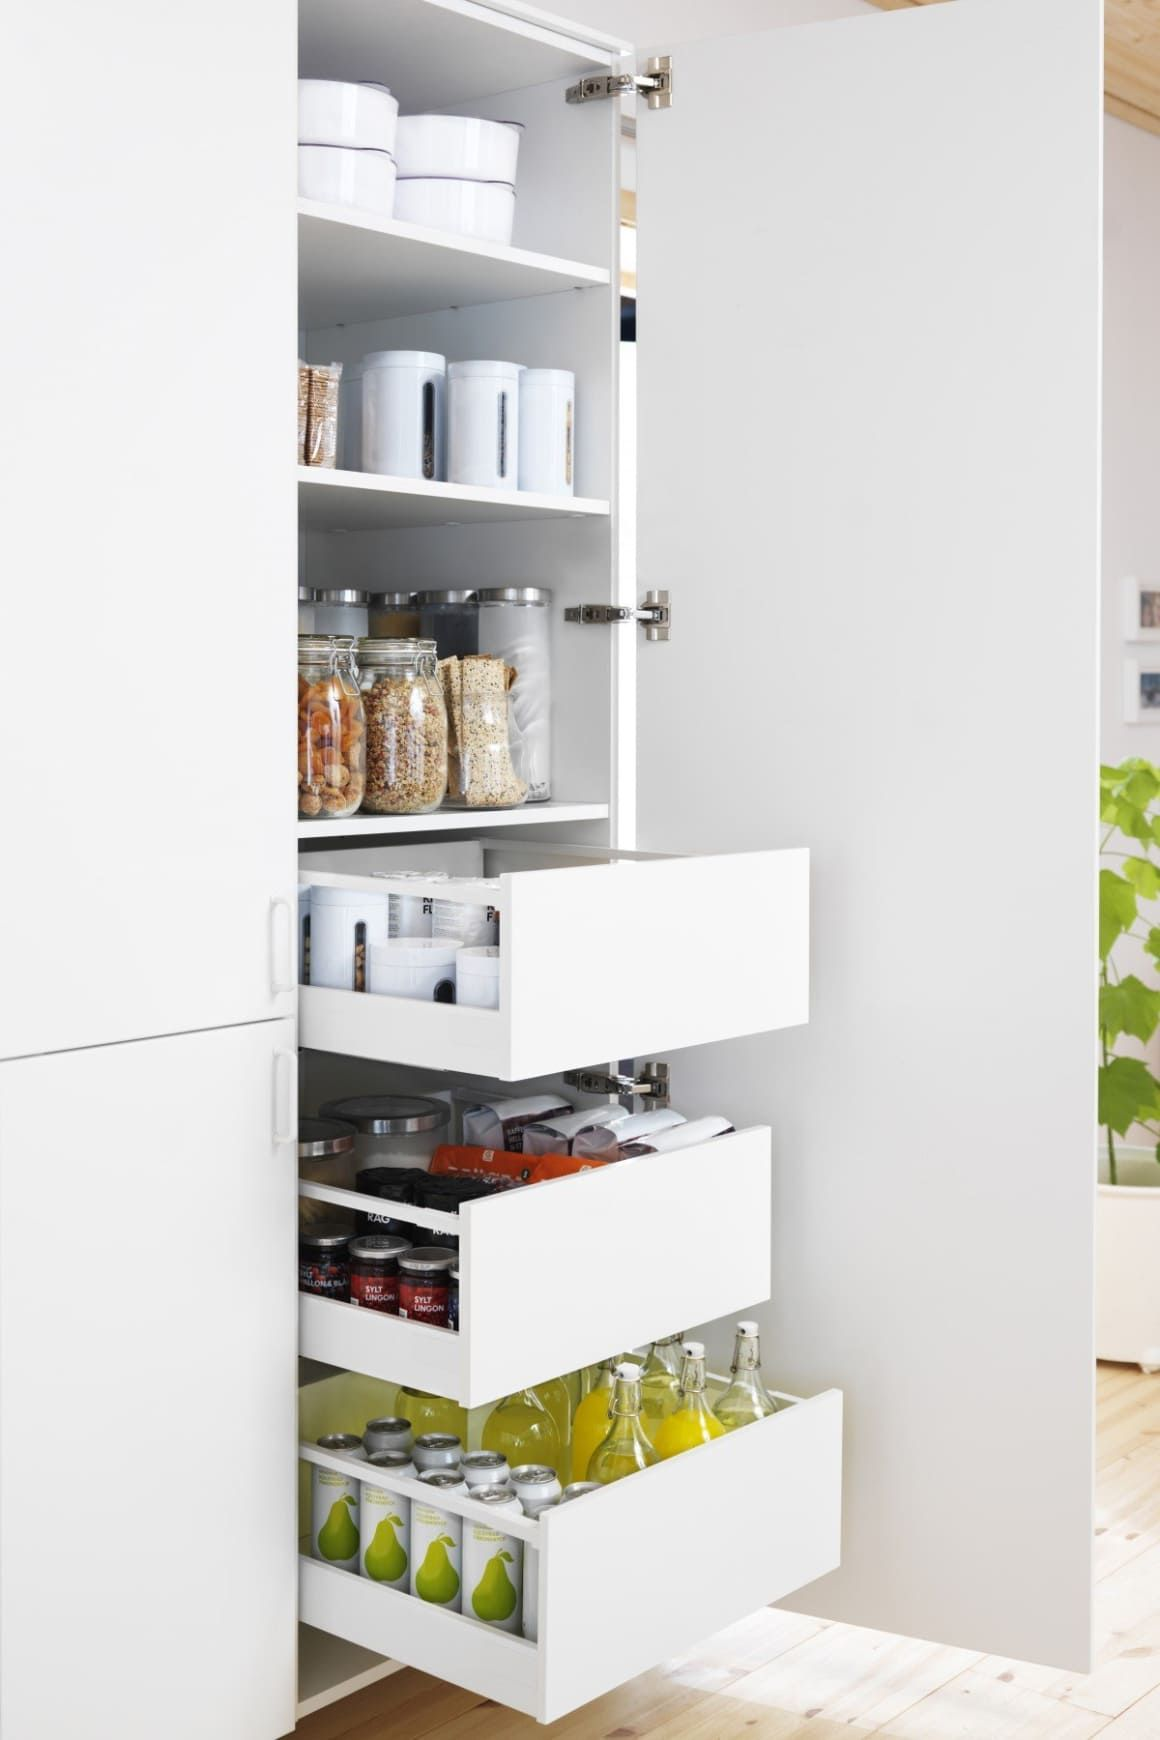 Ikea Is Totally Changing Their Kitchen Cabinet System Here S What We Know About Sektion Keuken Indeling Ikea Keuken Ikea Keukenkasten